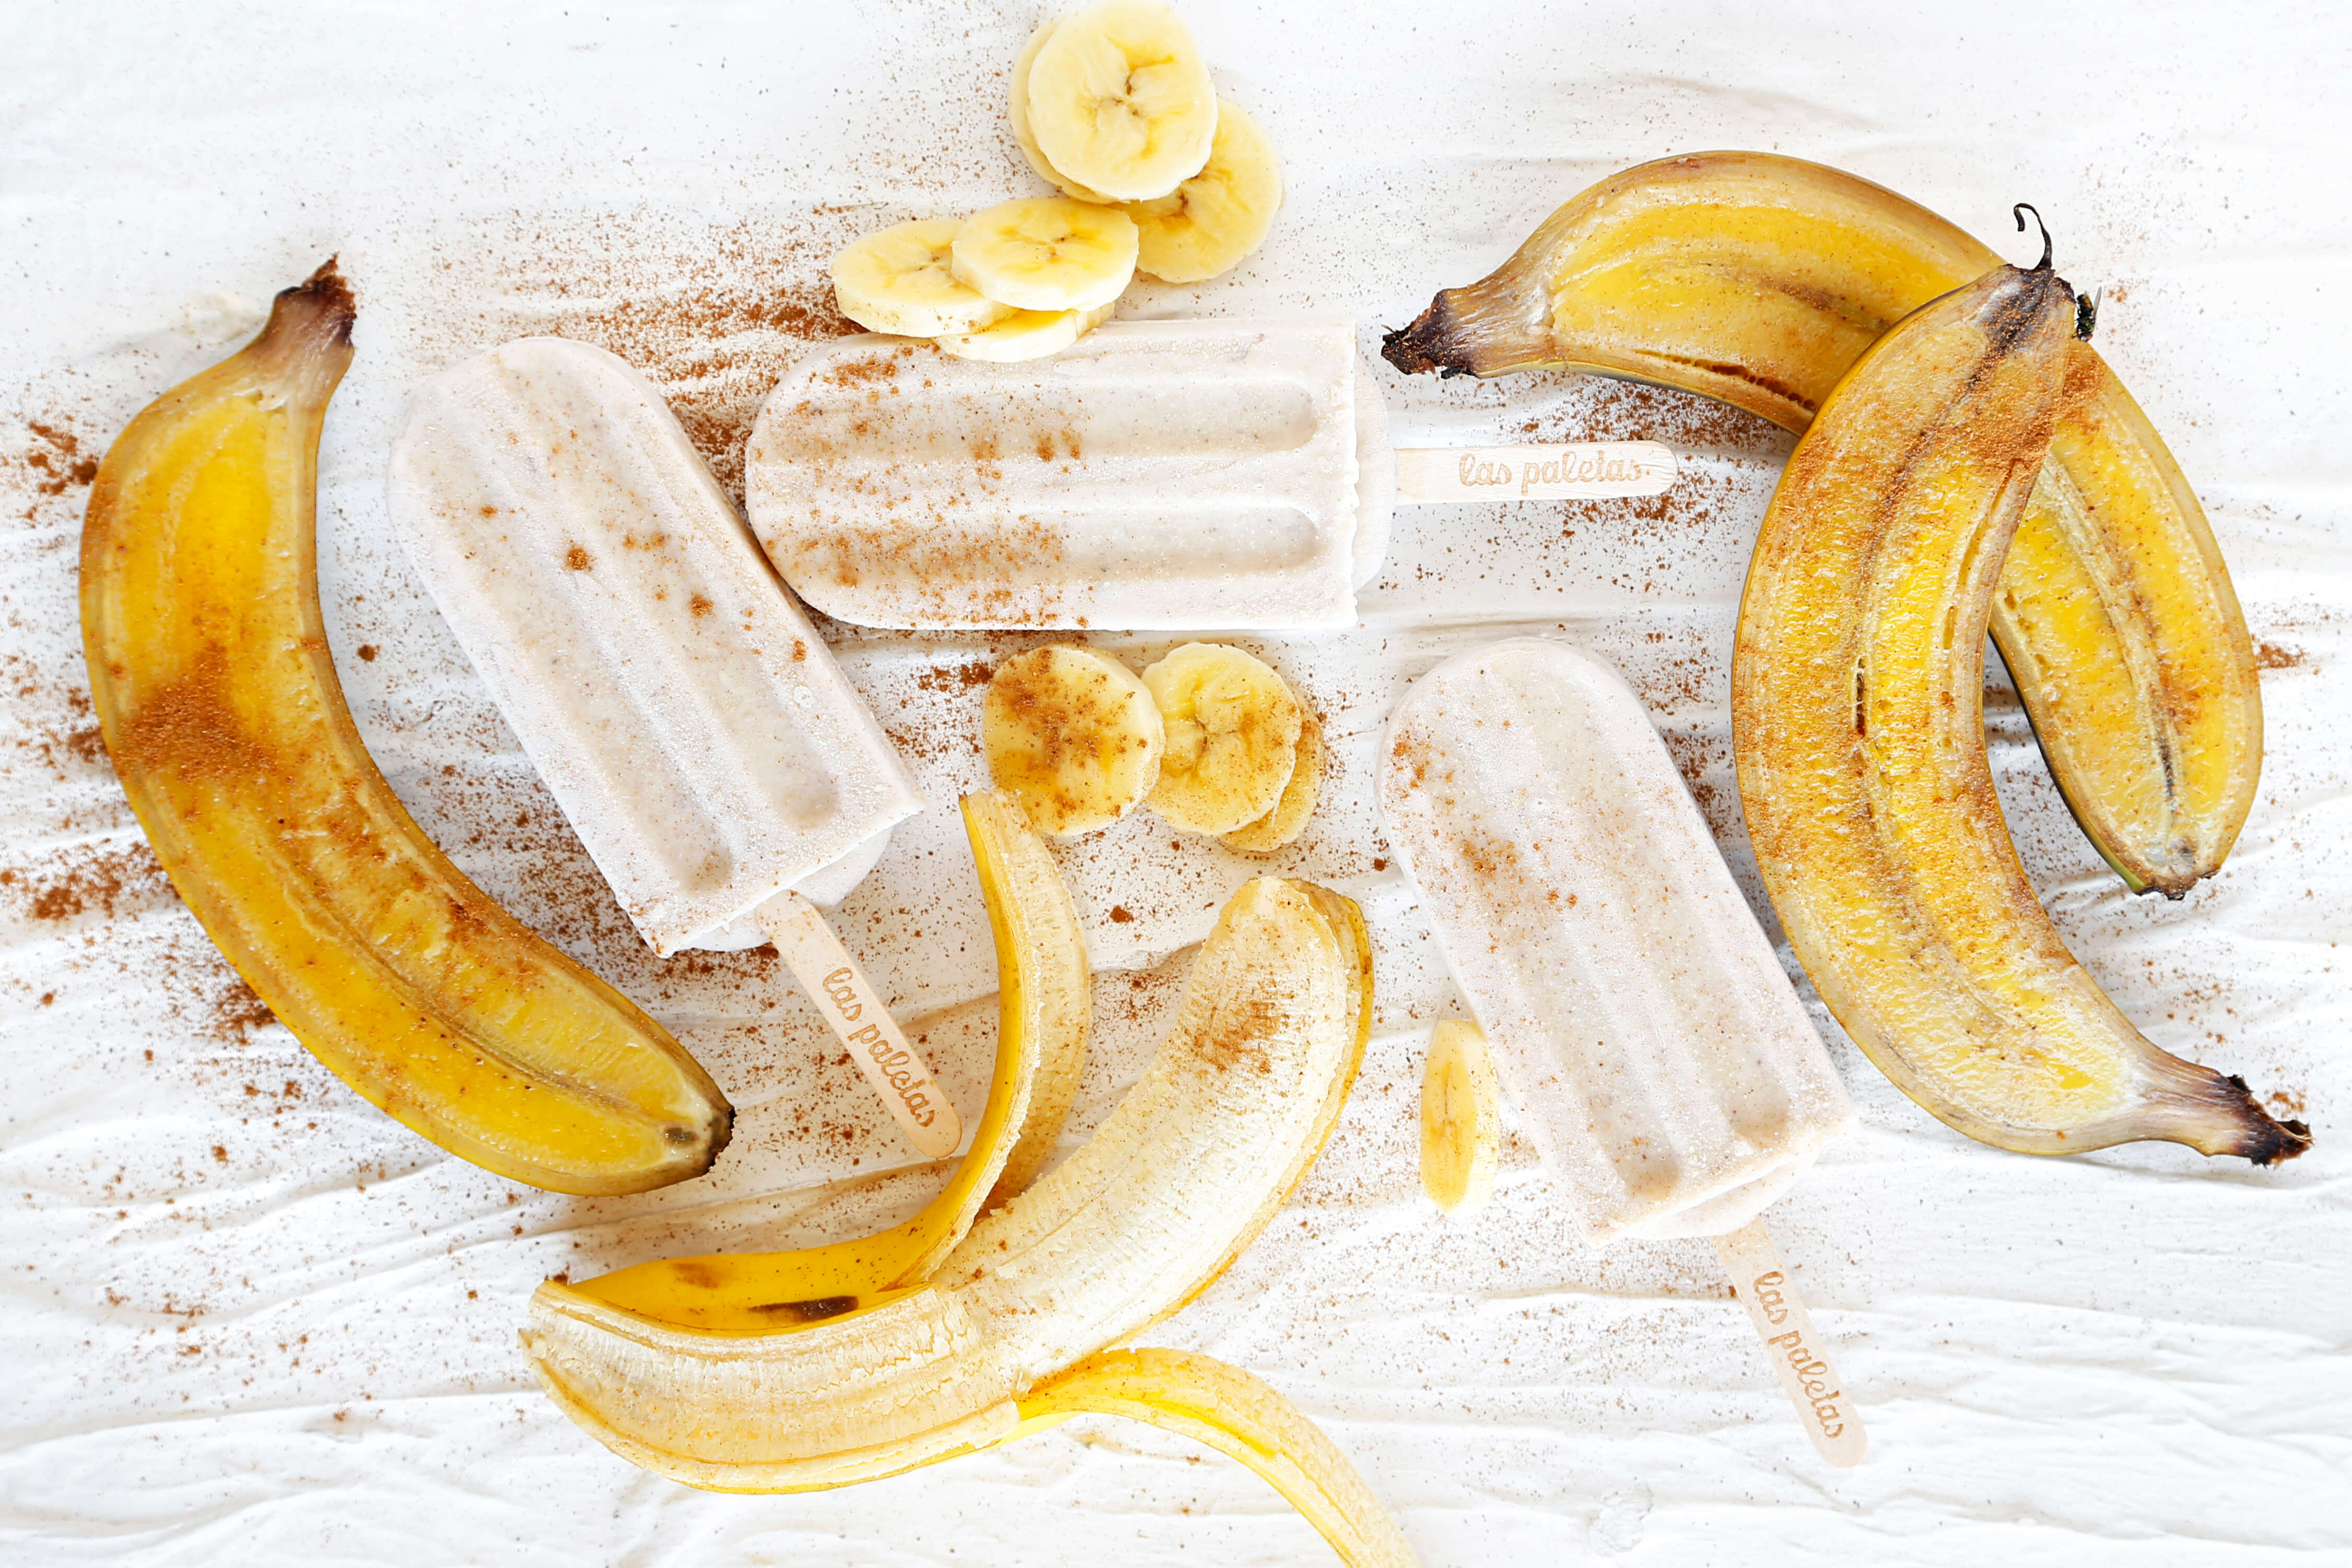 Golden Roasted whole Banana lolies by Las Paletas Ice Cream